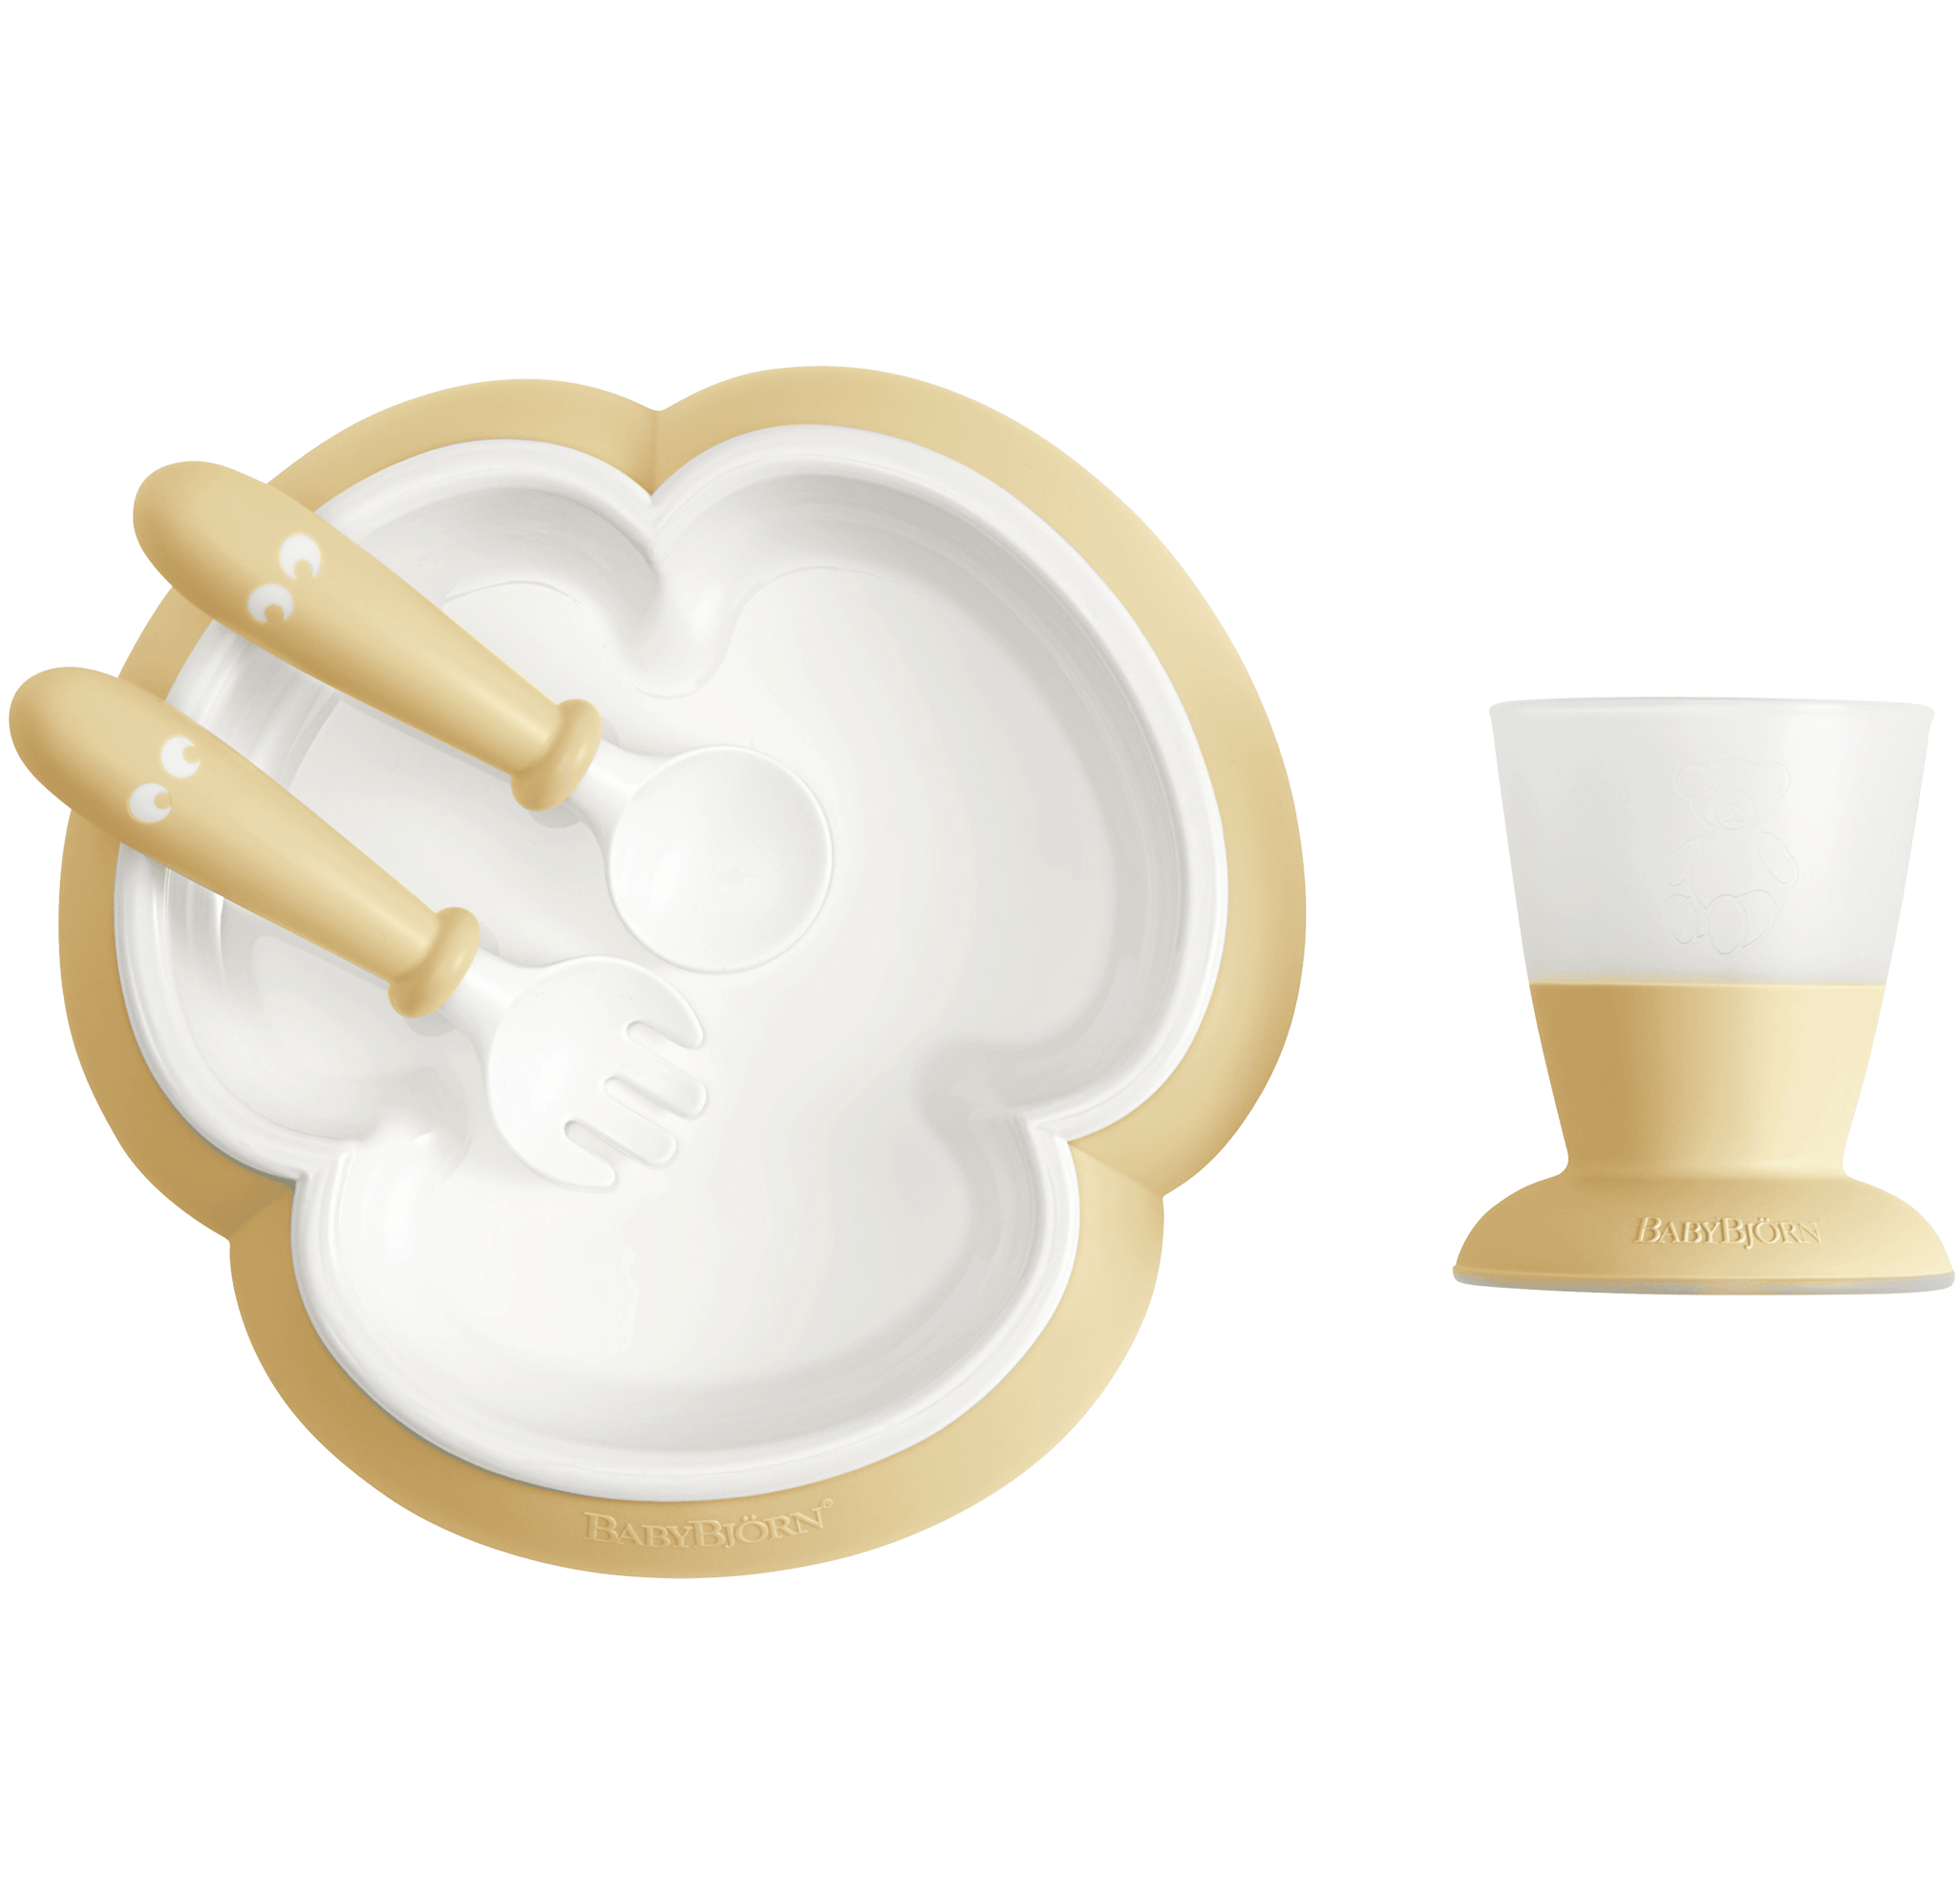 3bad4d5ce9f Baby feeding set with cup